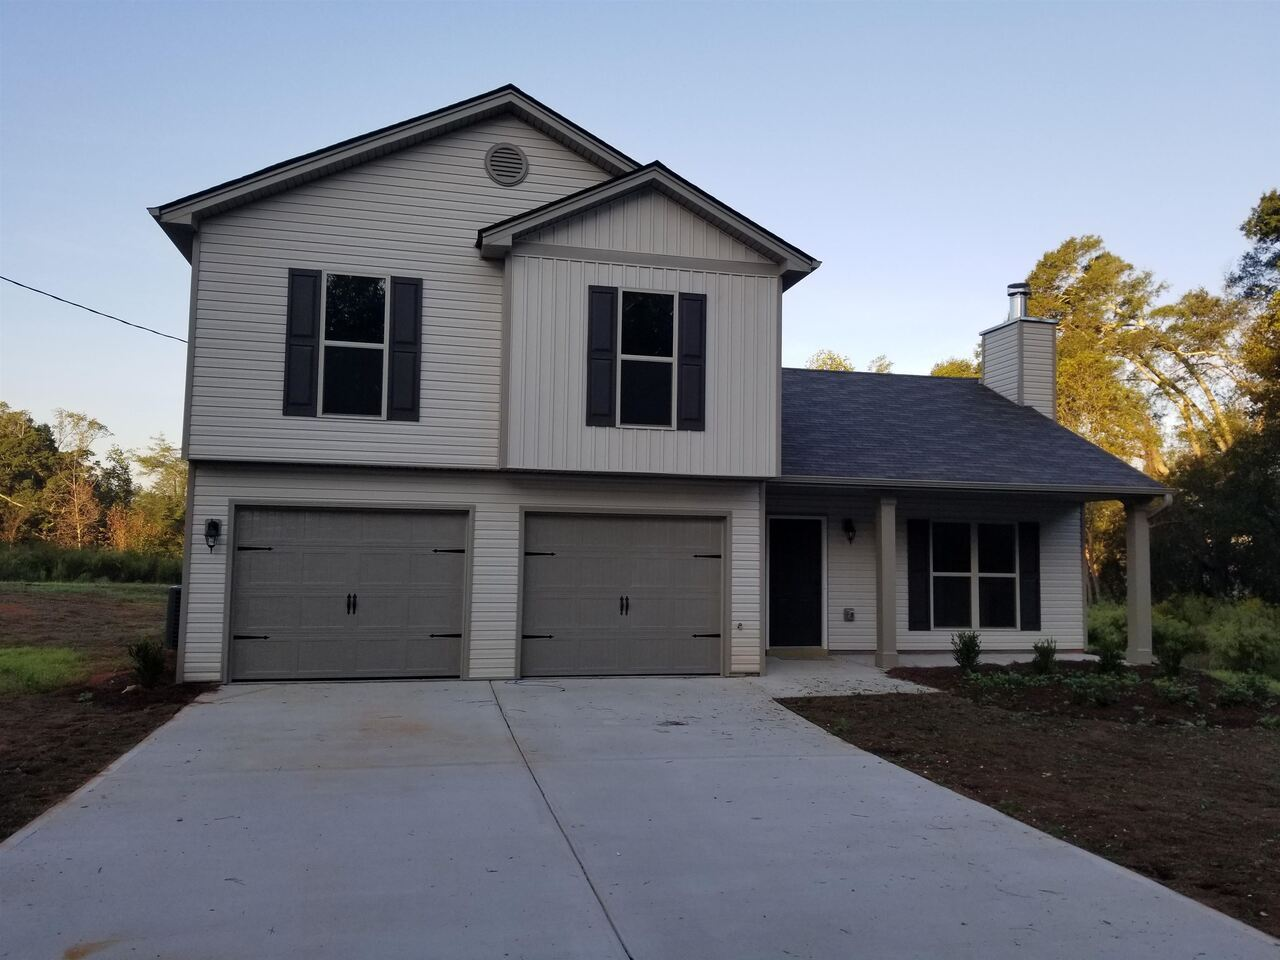 35 Armstrong Drive #108, Mansfield, GA 30055 - MLS#: 9052250